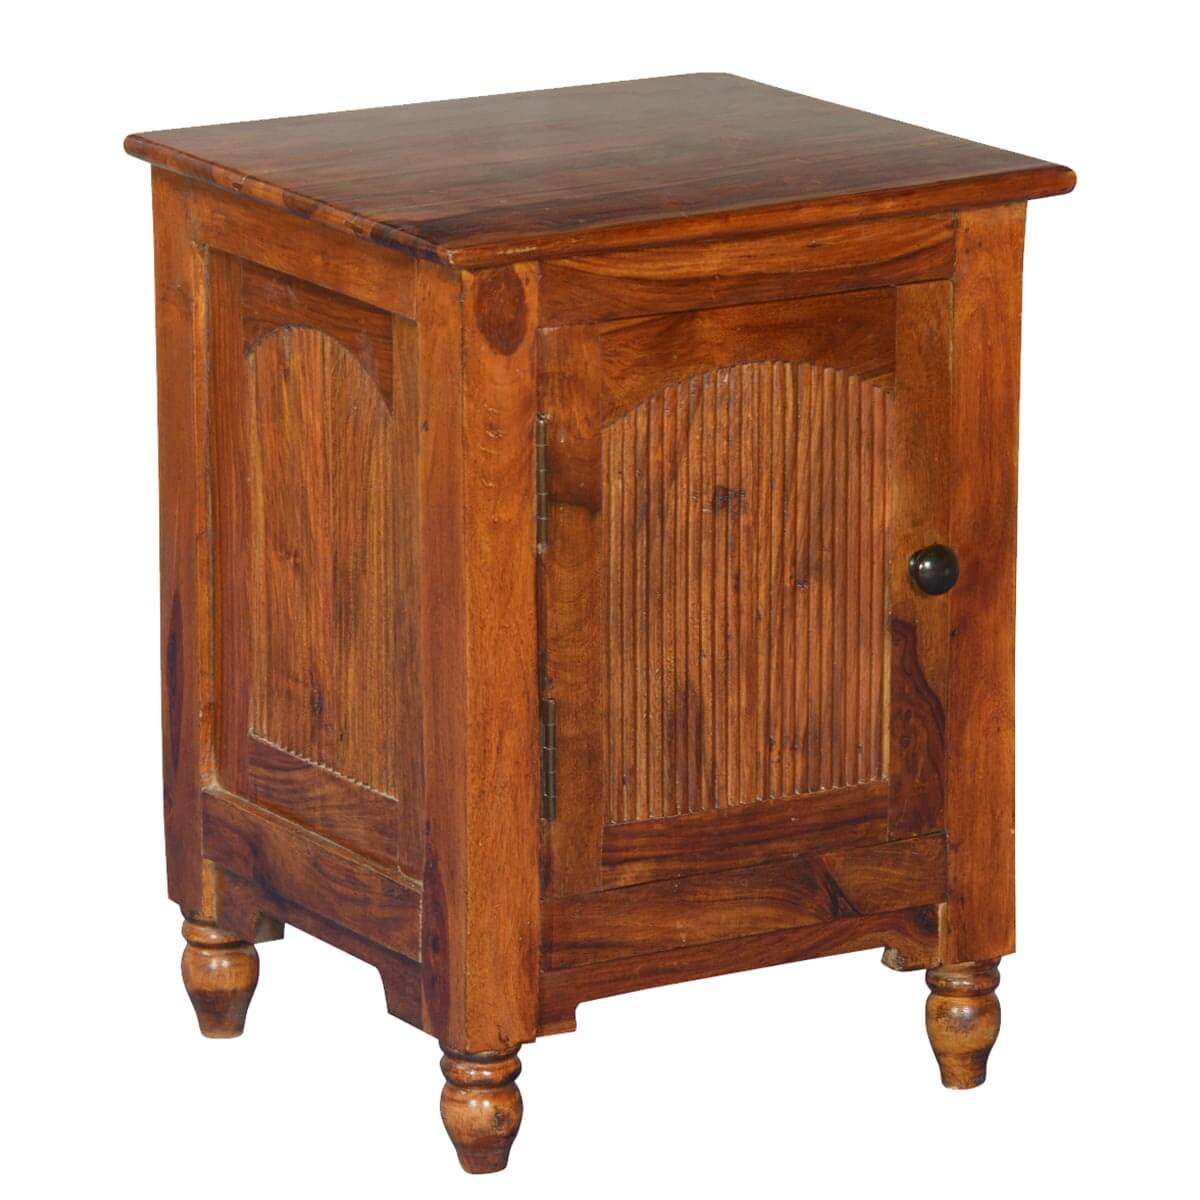 Rustic Empire Solid Wood Nightstand End Table Cabinet